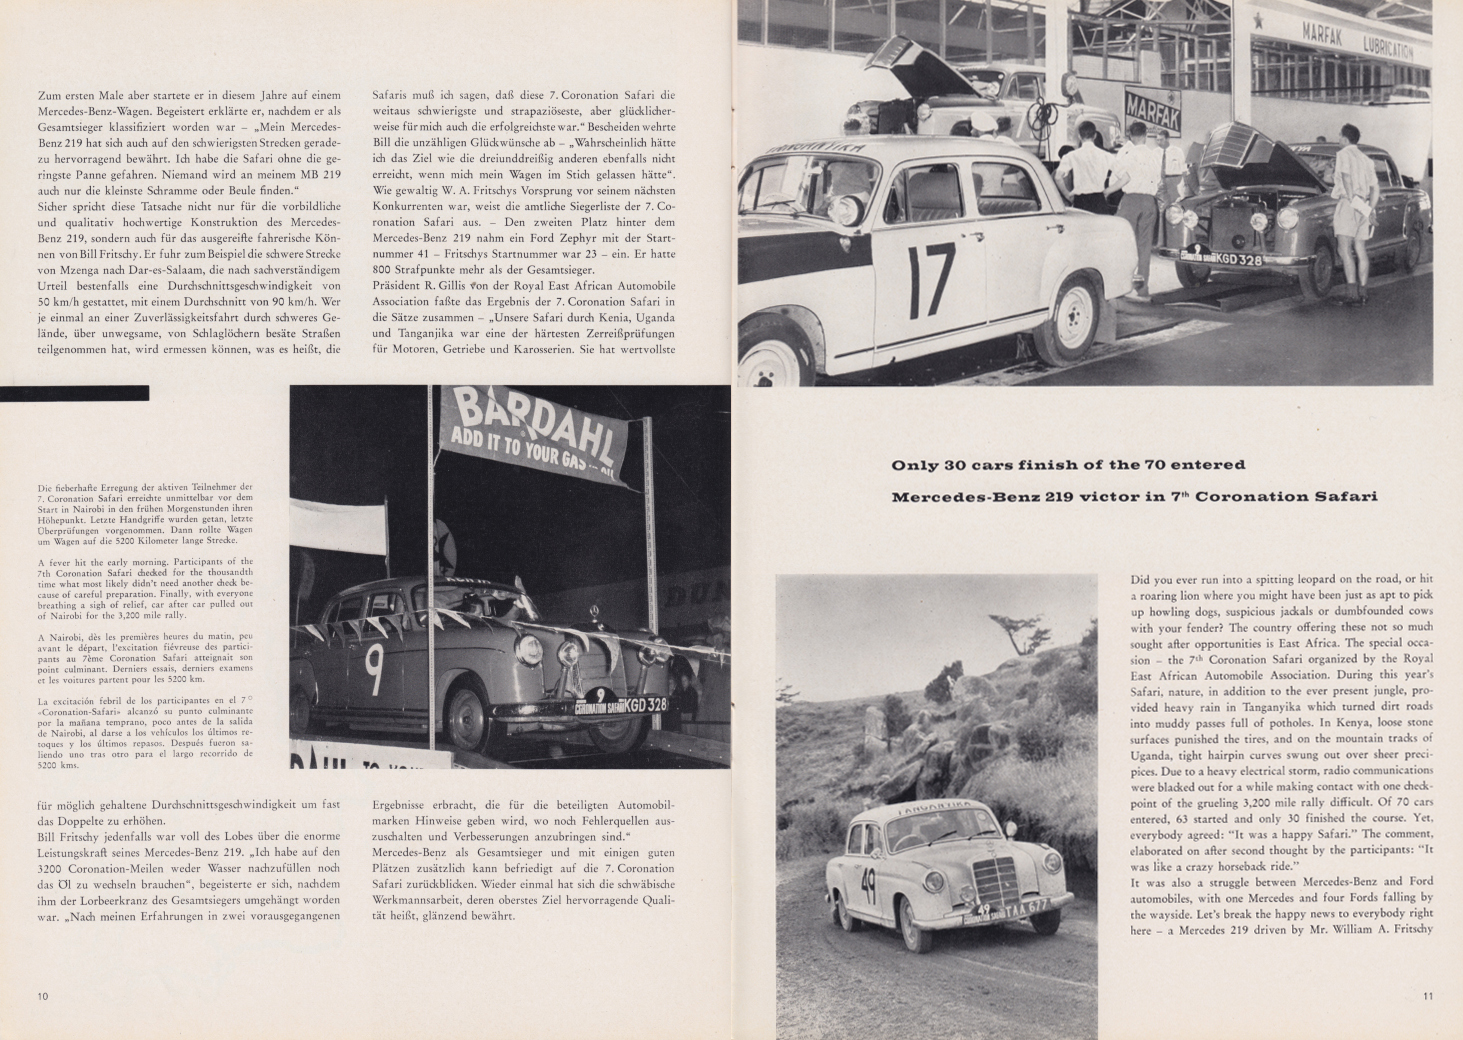 (REVISTA): Periódico In aller welt n.º 33 - Mercedes-Benz no mundo - 1959 - multilingue 006